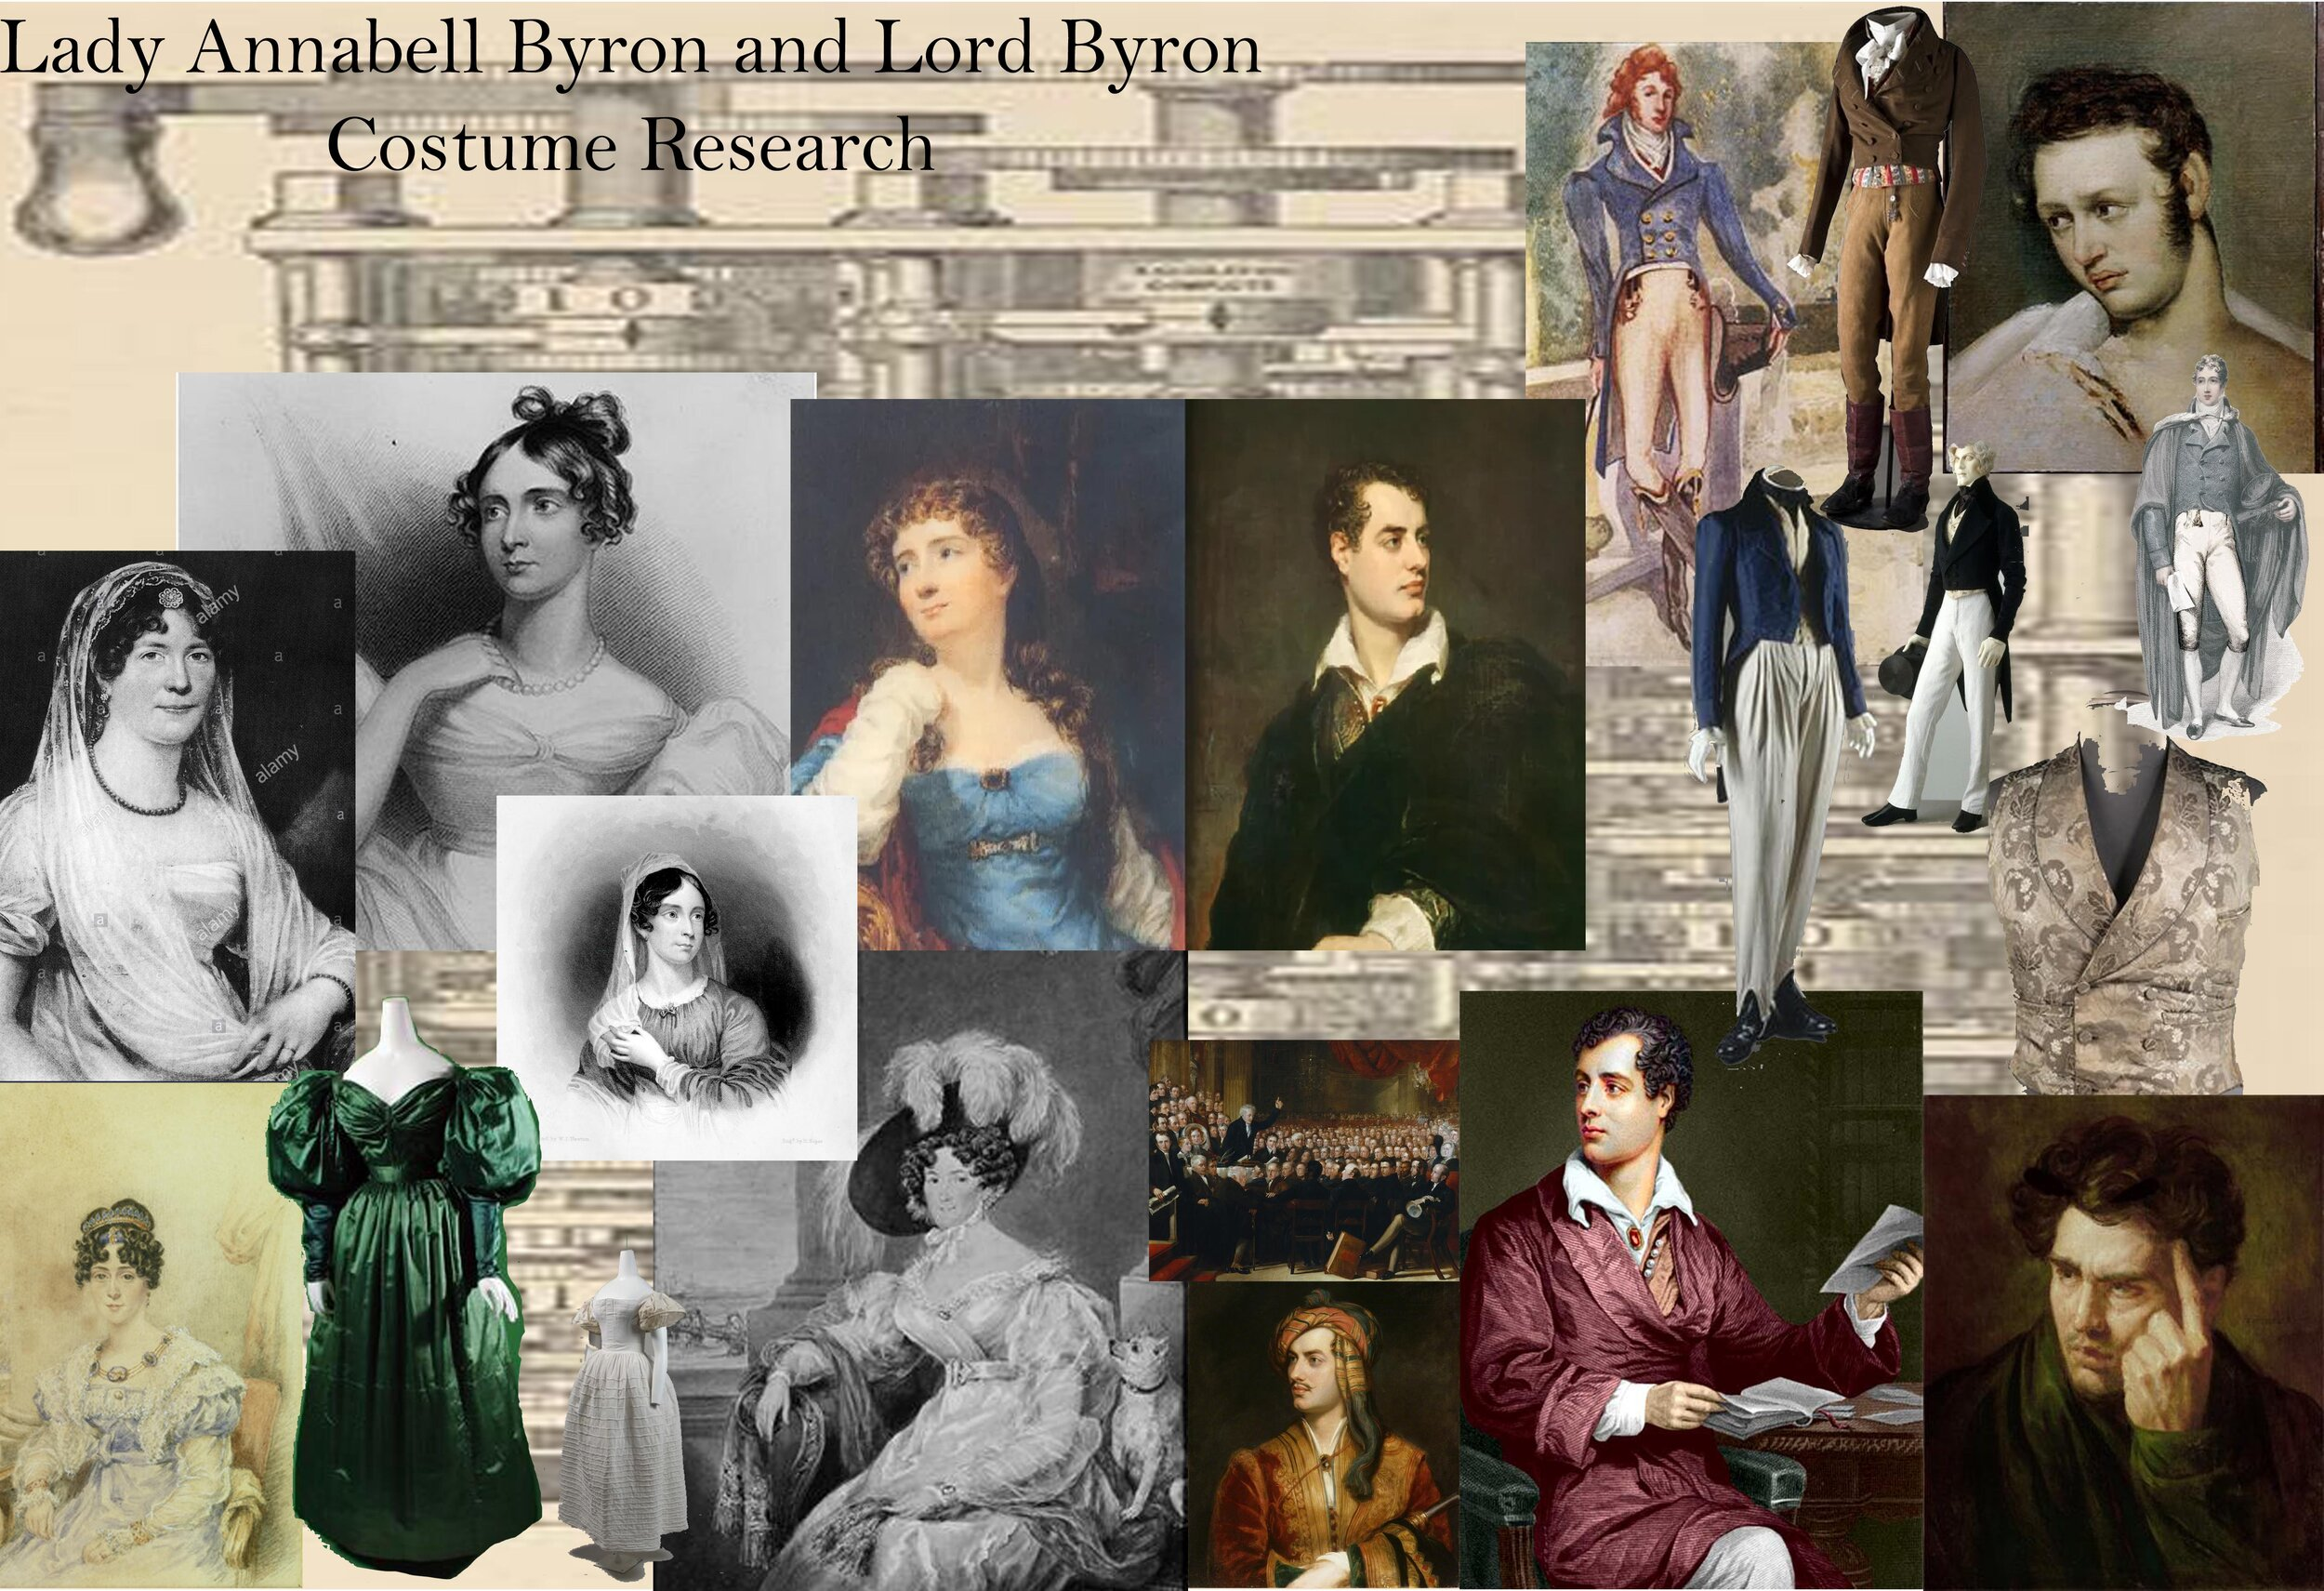 Lady Annabell and Lord Byron.jpg